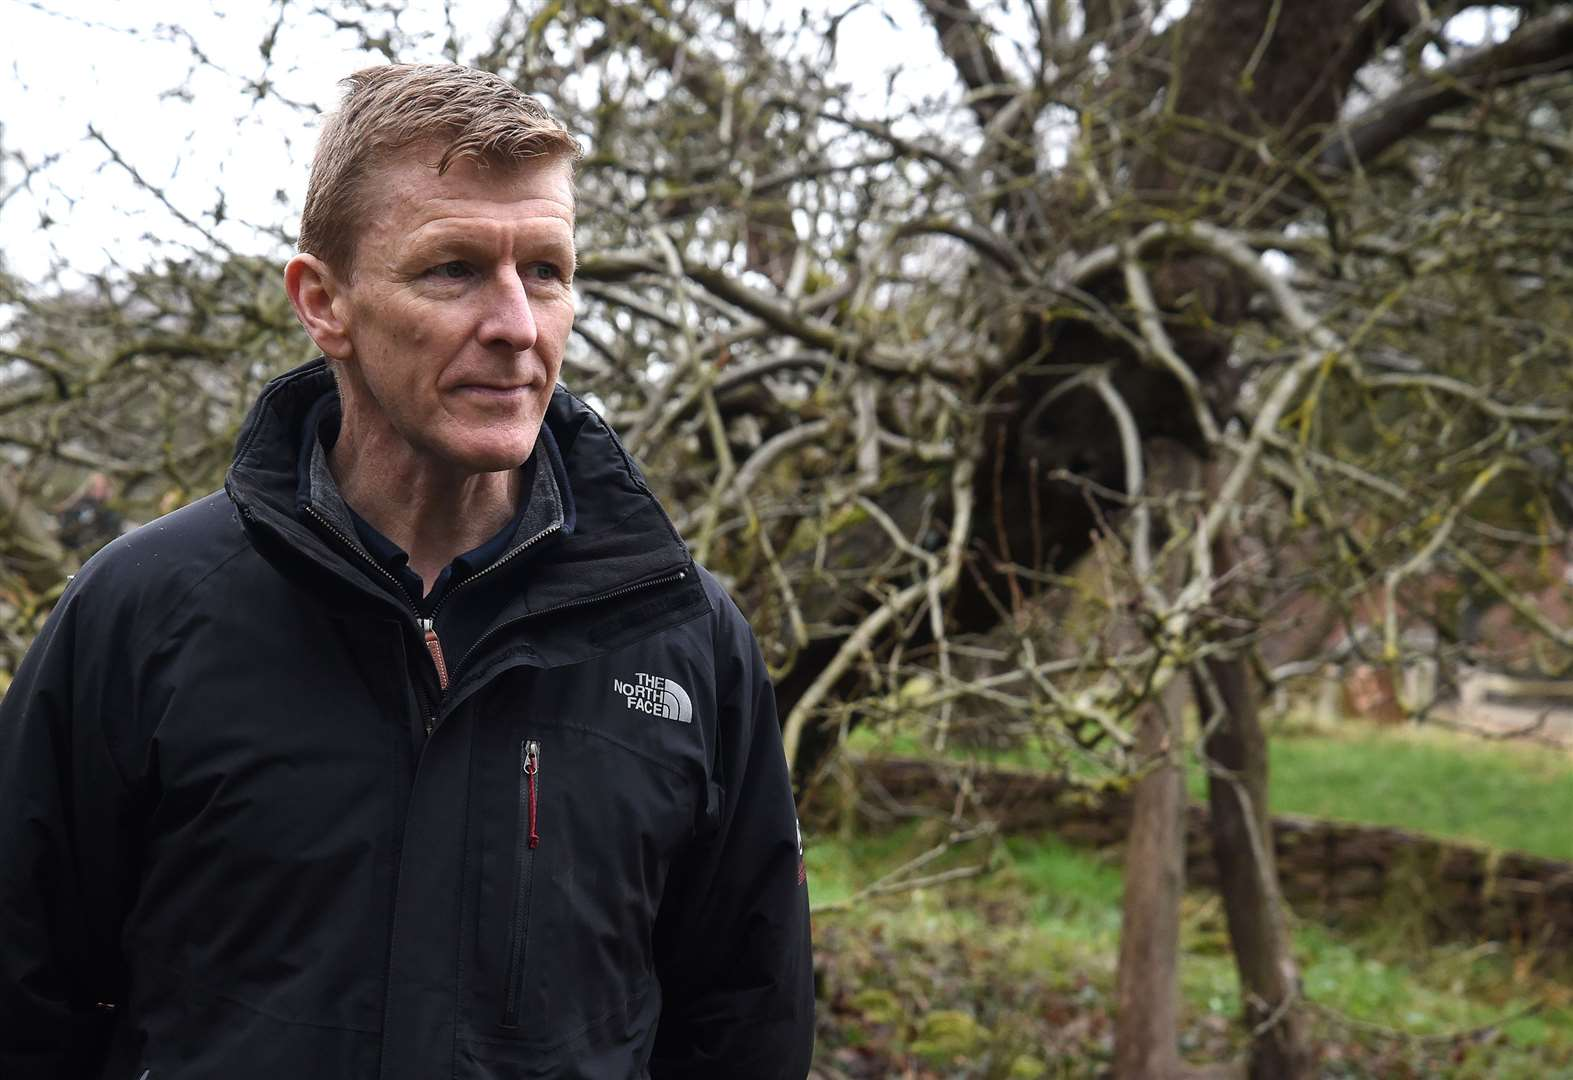 British astronaut Tim Peake visits Woolsthorpe Manor to award 'space saplings' to competition winners